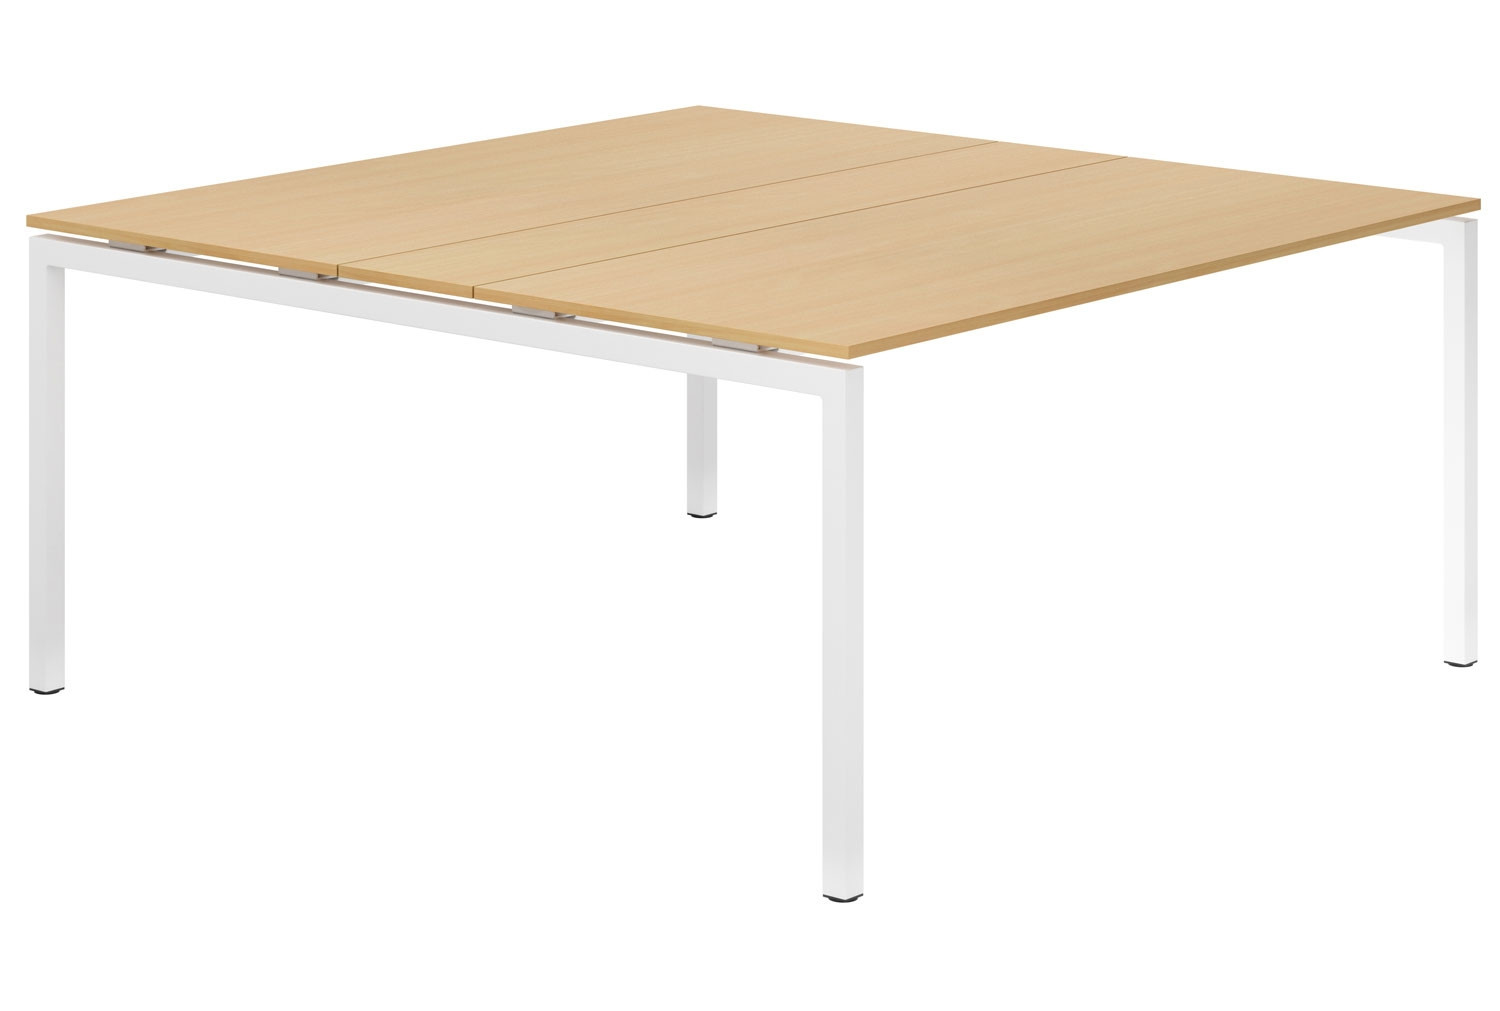 Next-Day Lozano H-Leg 6-8 Person Meeting Table (Beech)